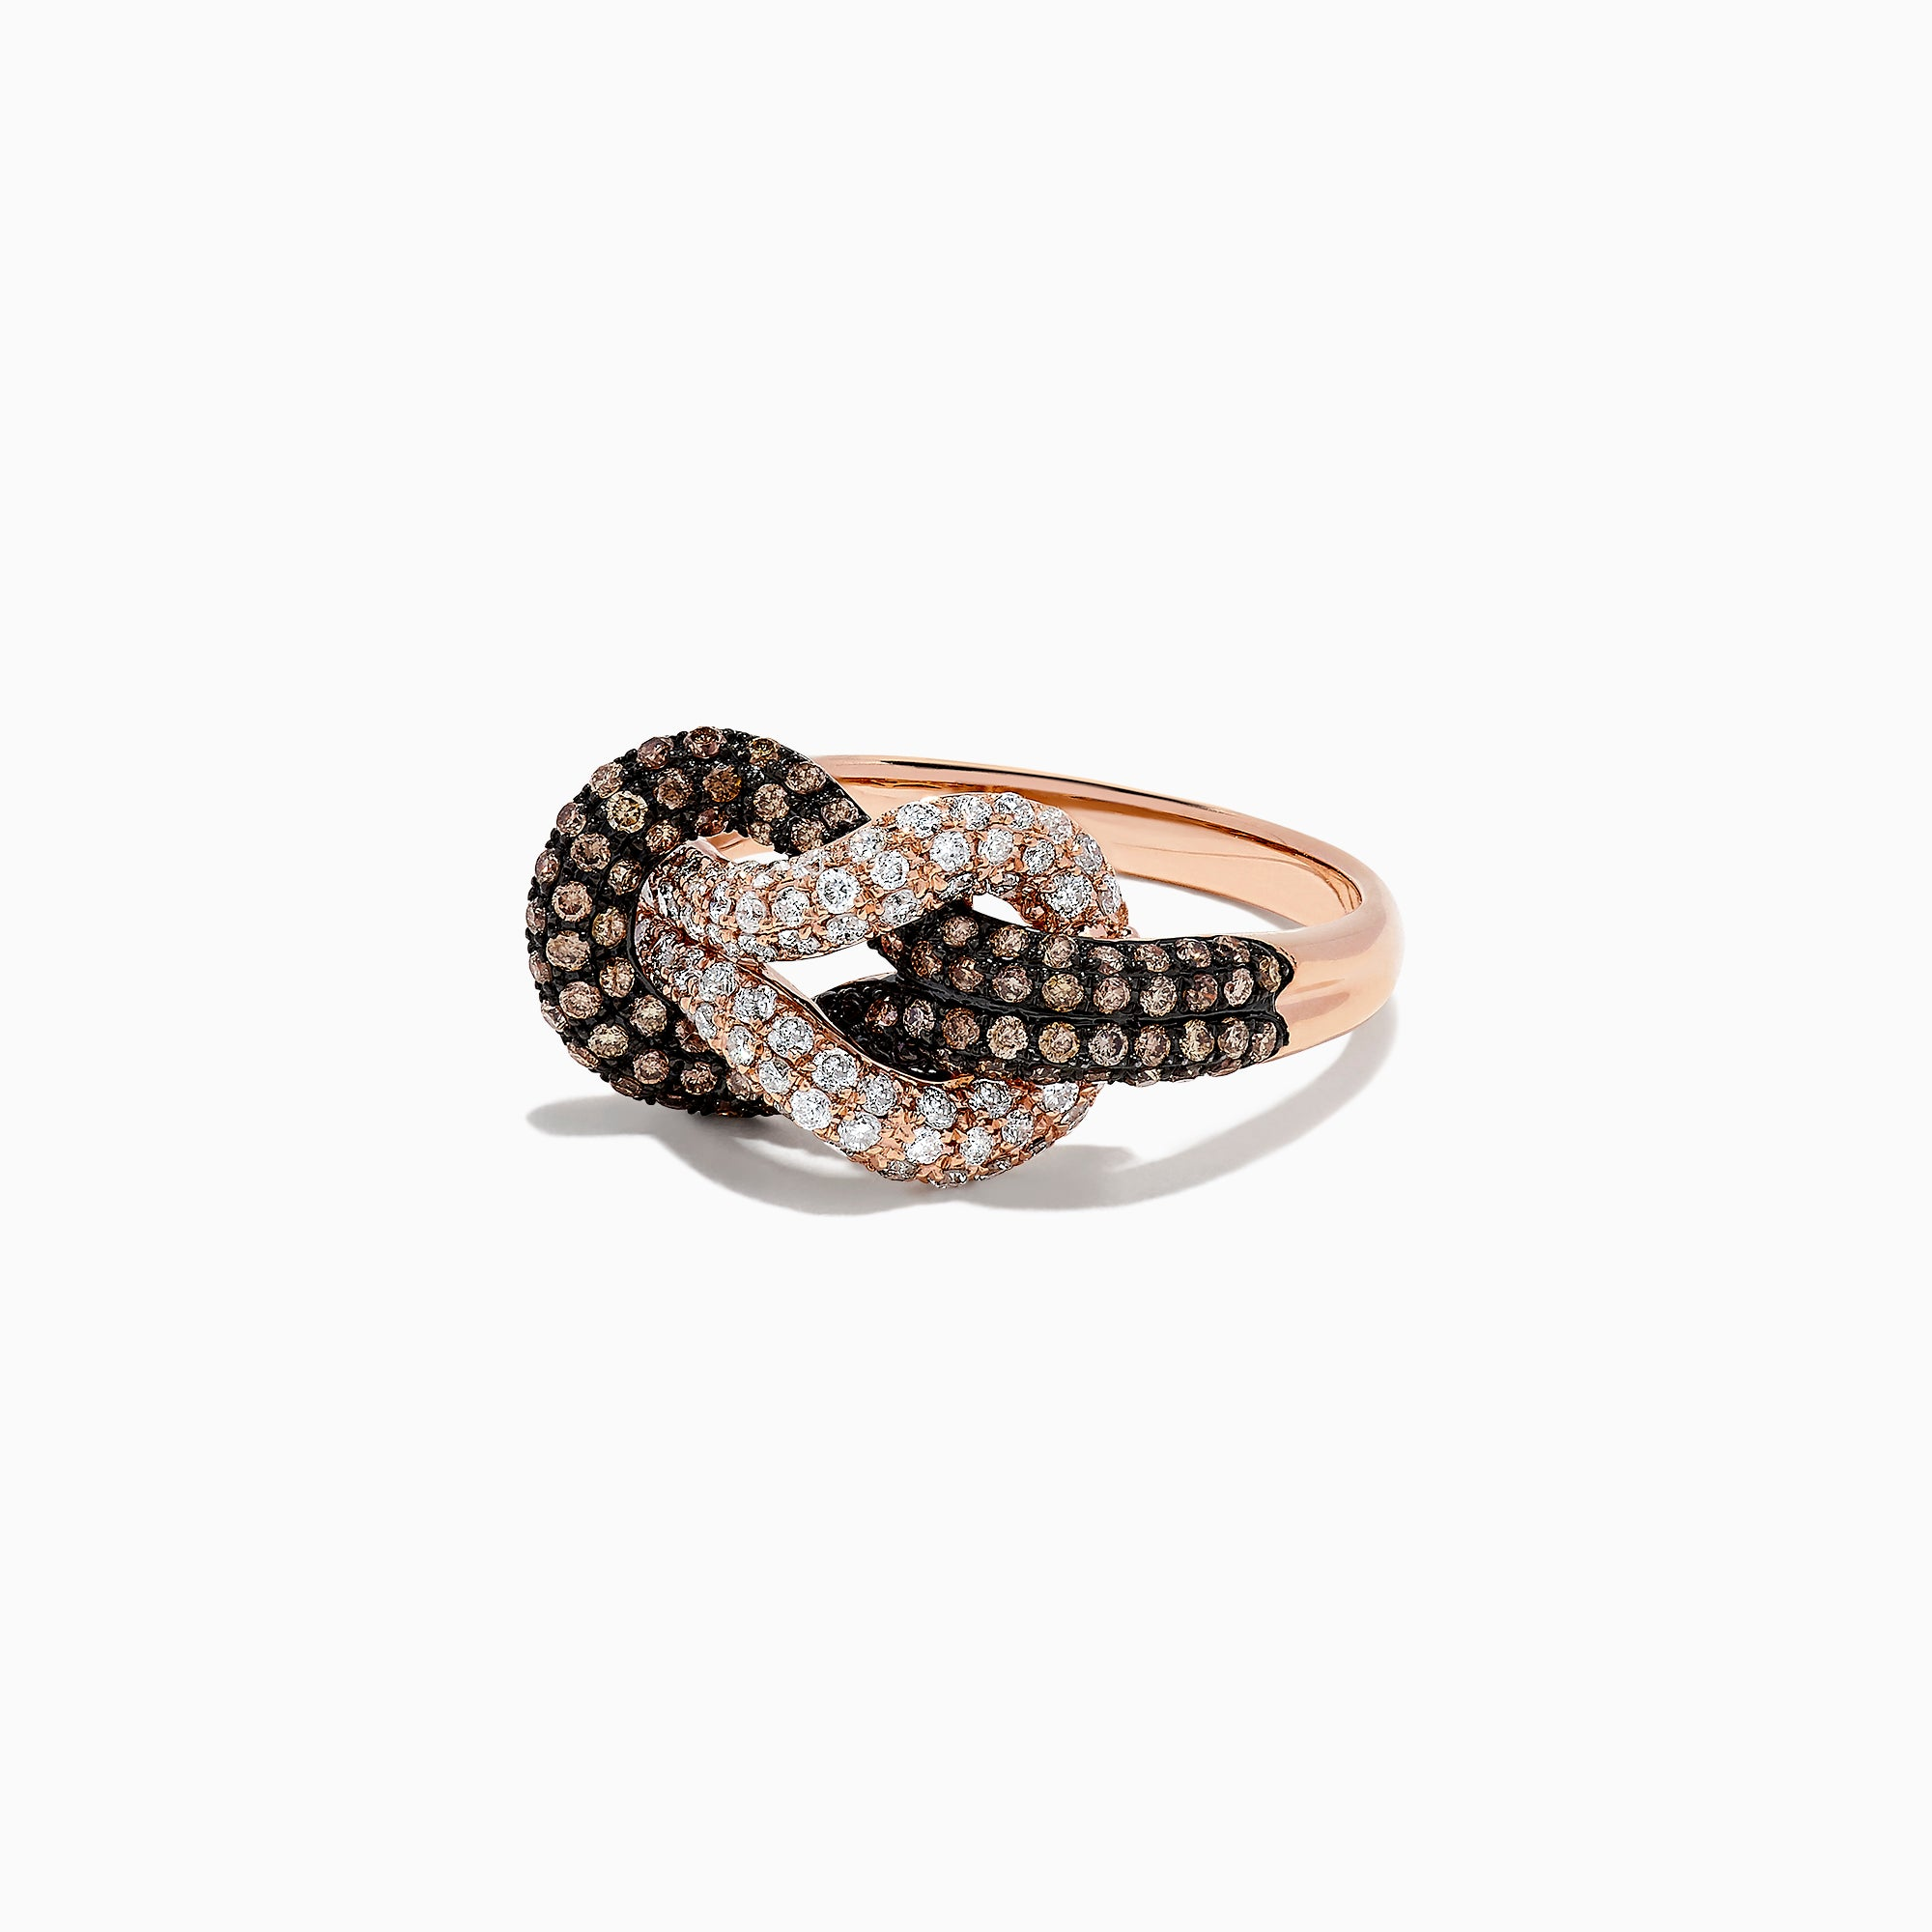 Effy 14K Rose Gold Espresso and White Diamond Slipknot Ring, 0.86 TCW